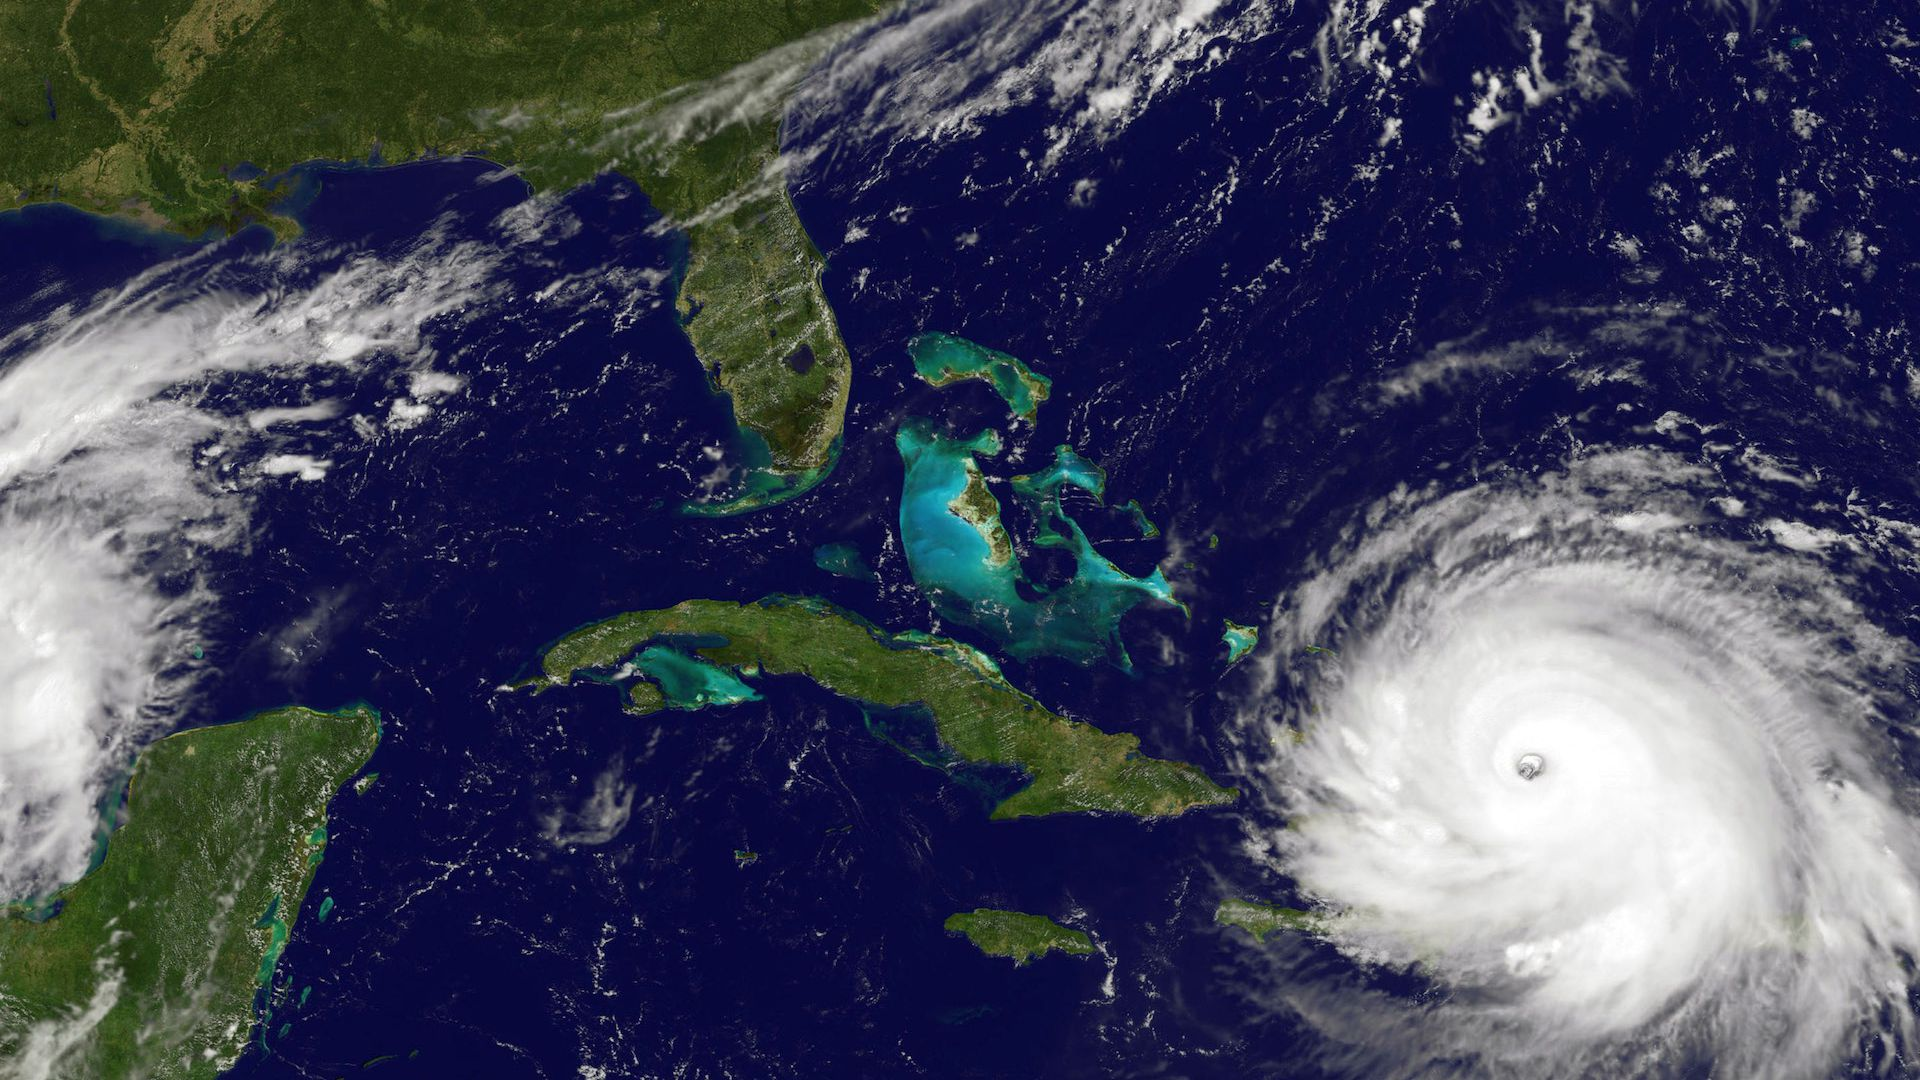 Satellite view of Hurricane Irma approaching Florida in September 2017.